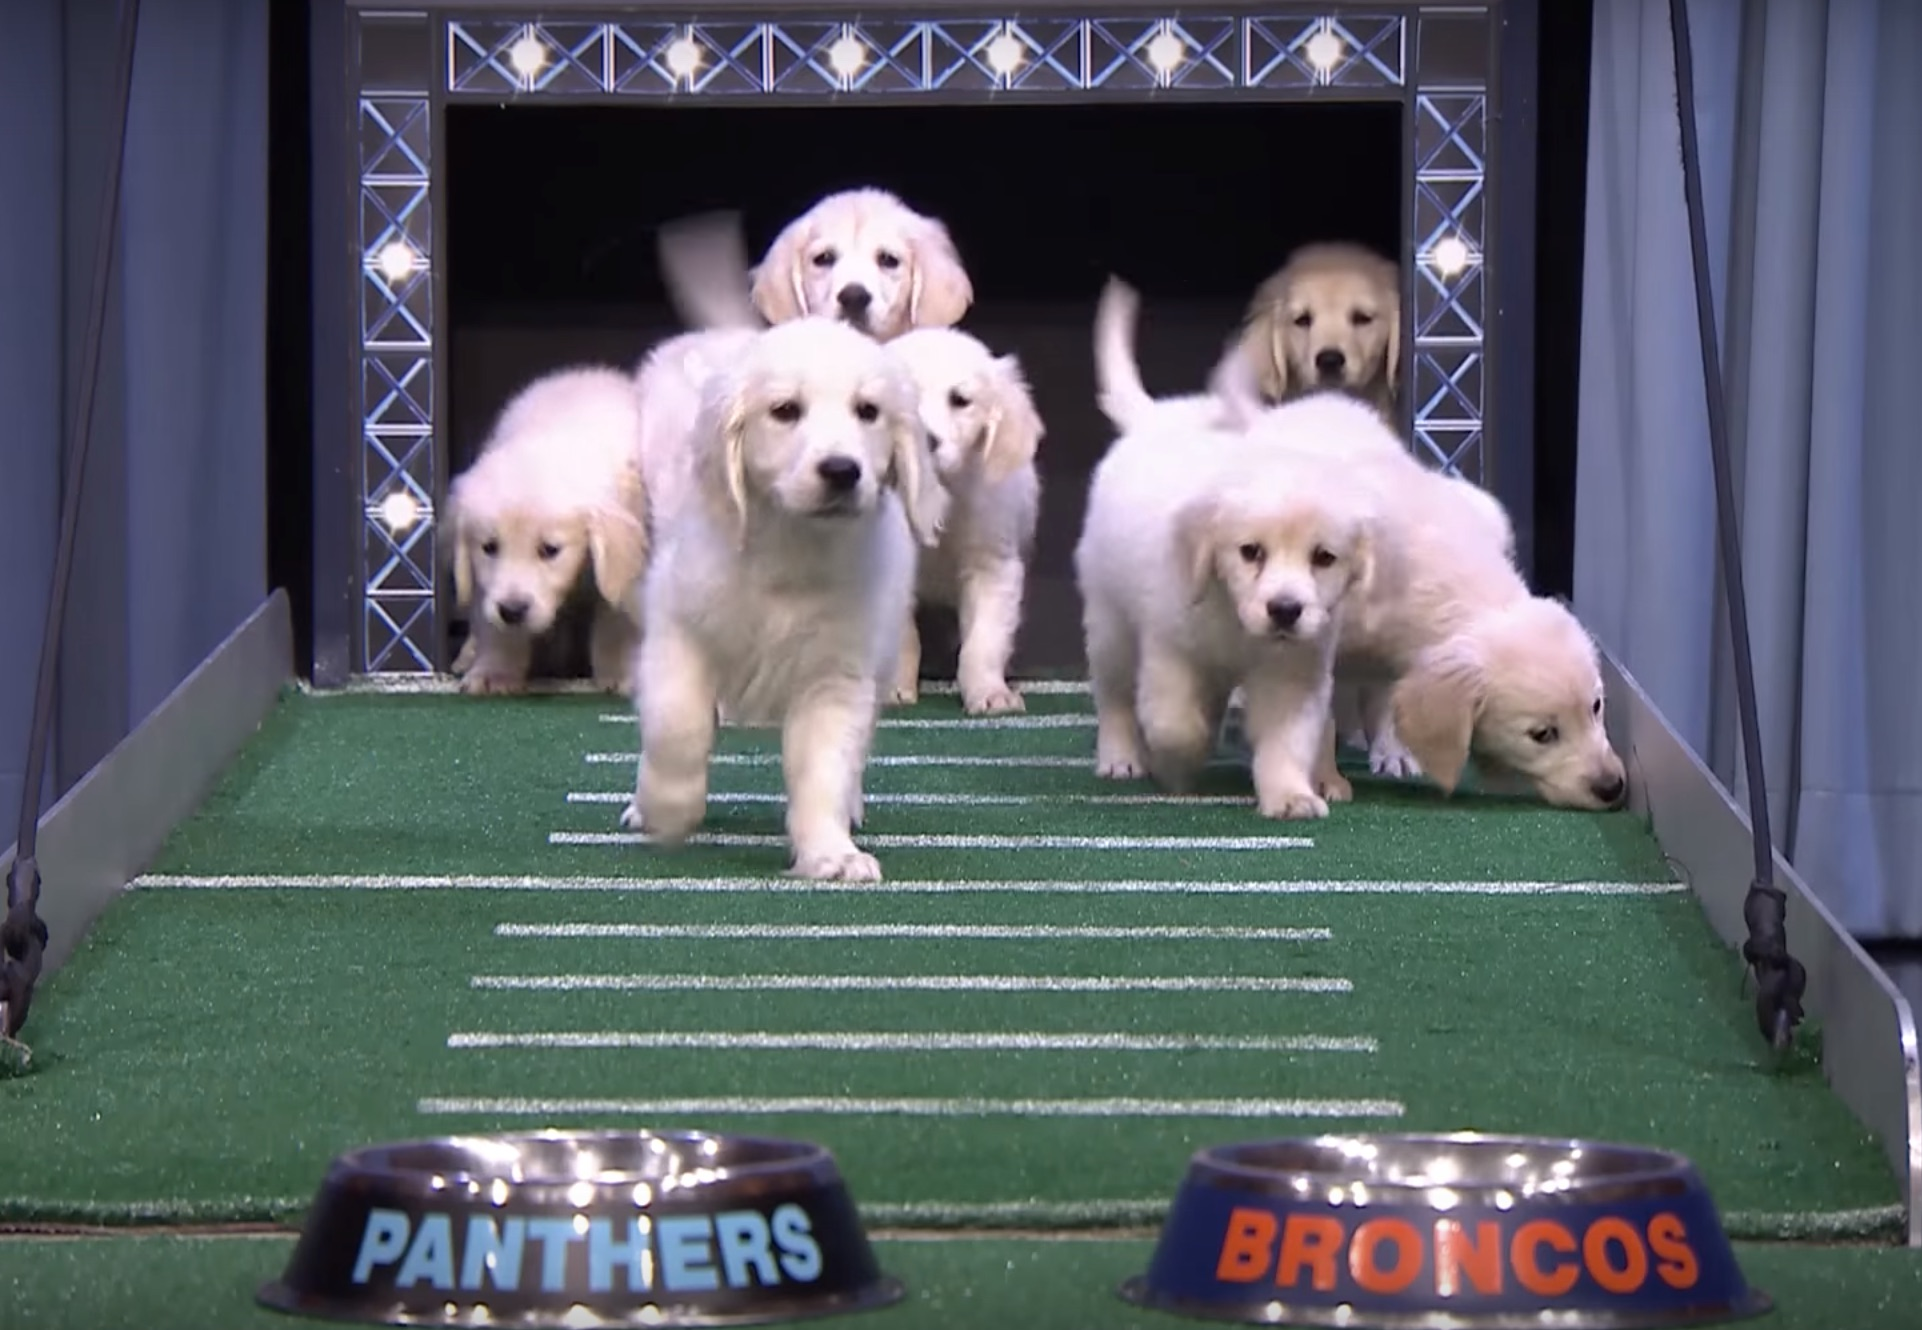 These adorable puppies just predicted which team will win the Super Bowl